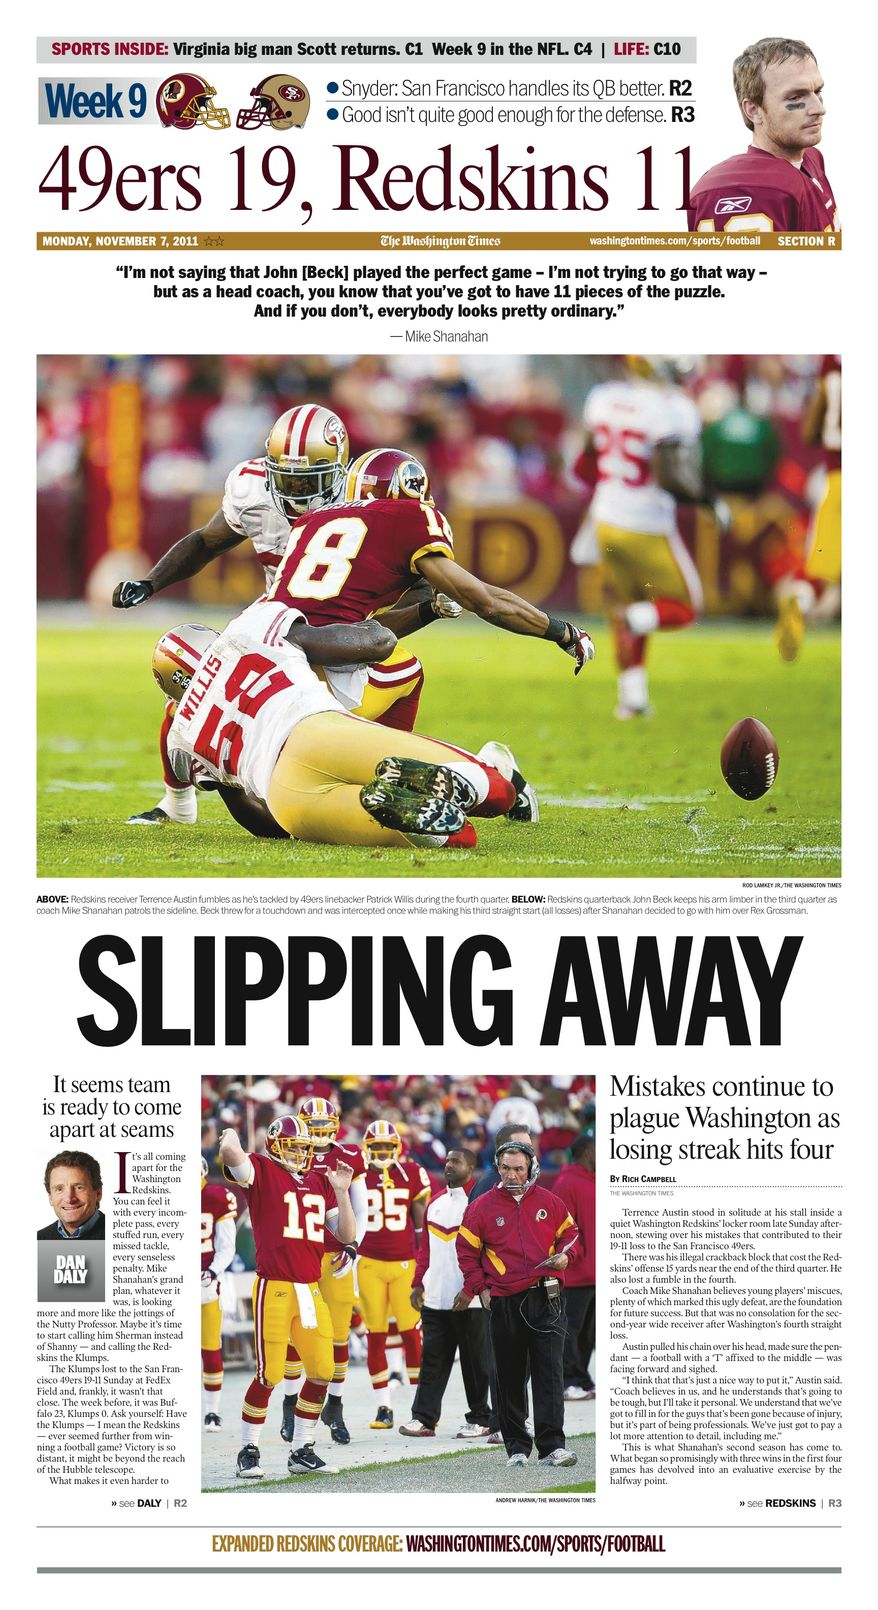 Week 9: Mistakes plague Redskins in 19-11 loss to 49ers.